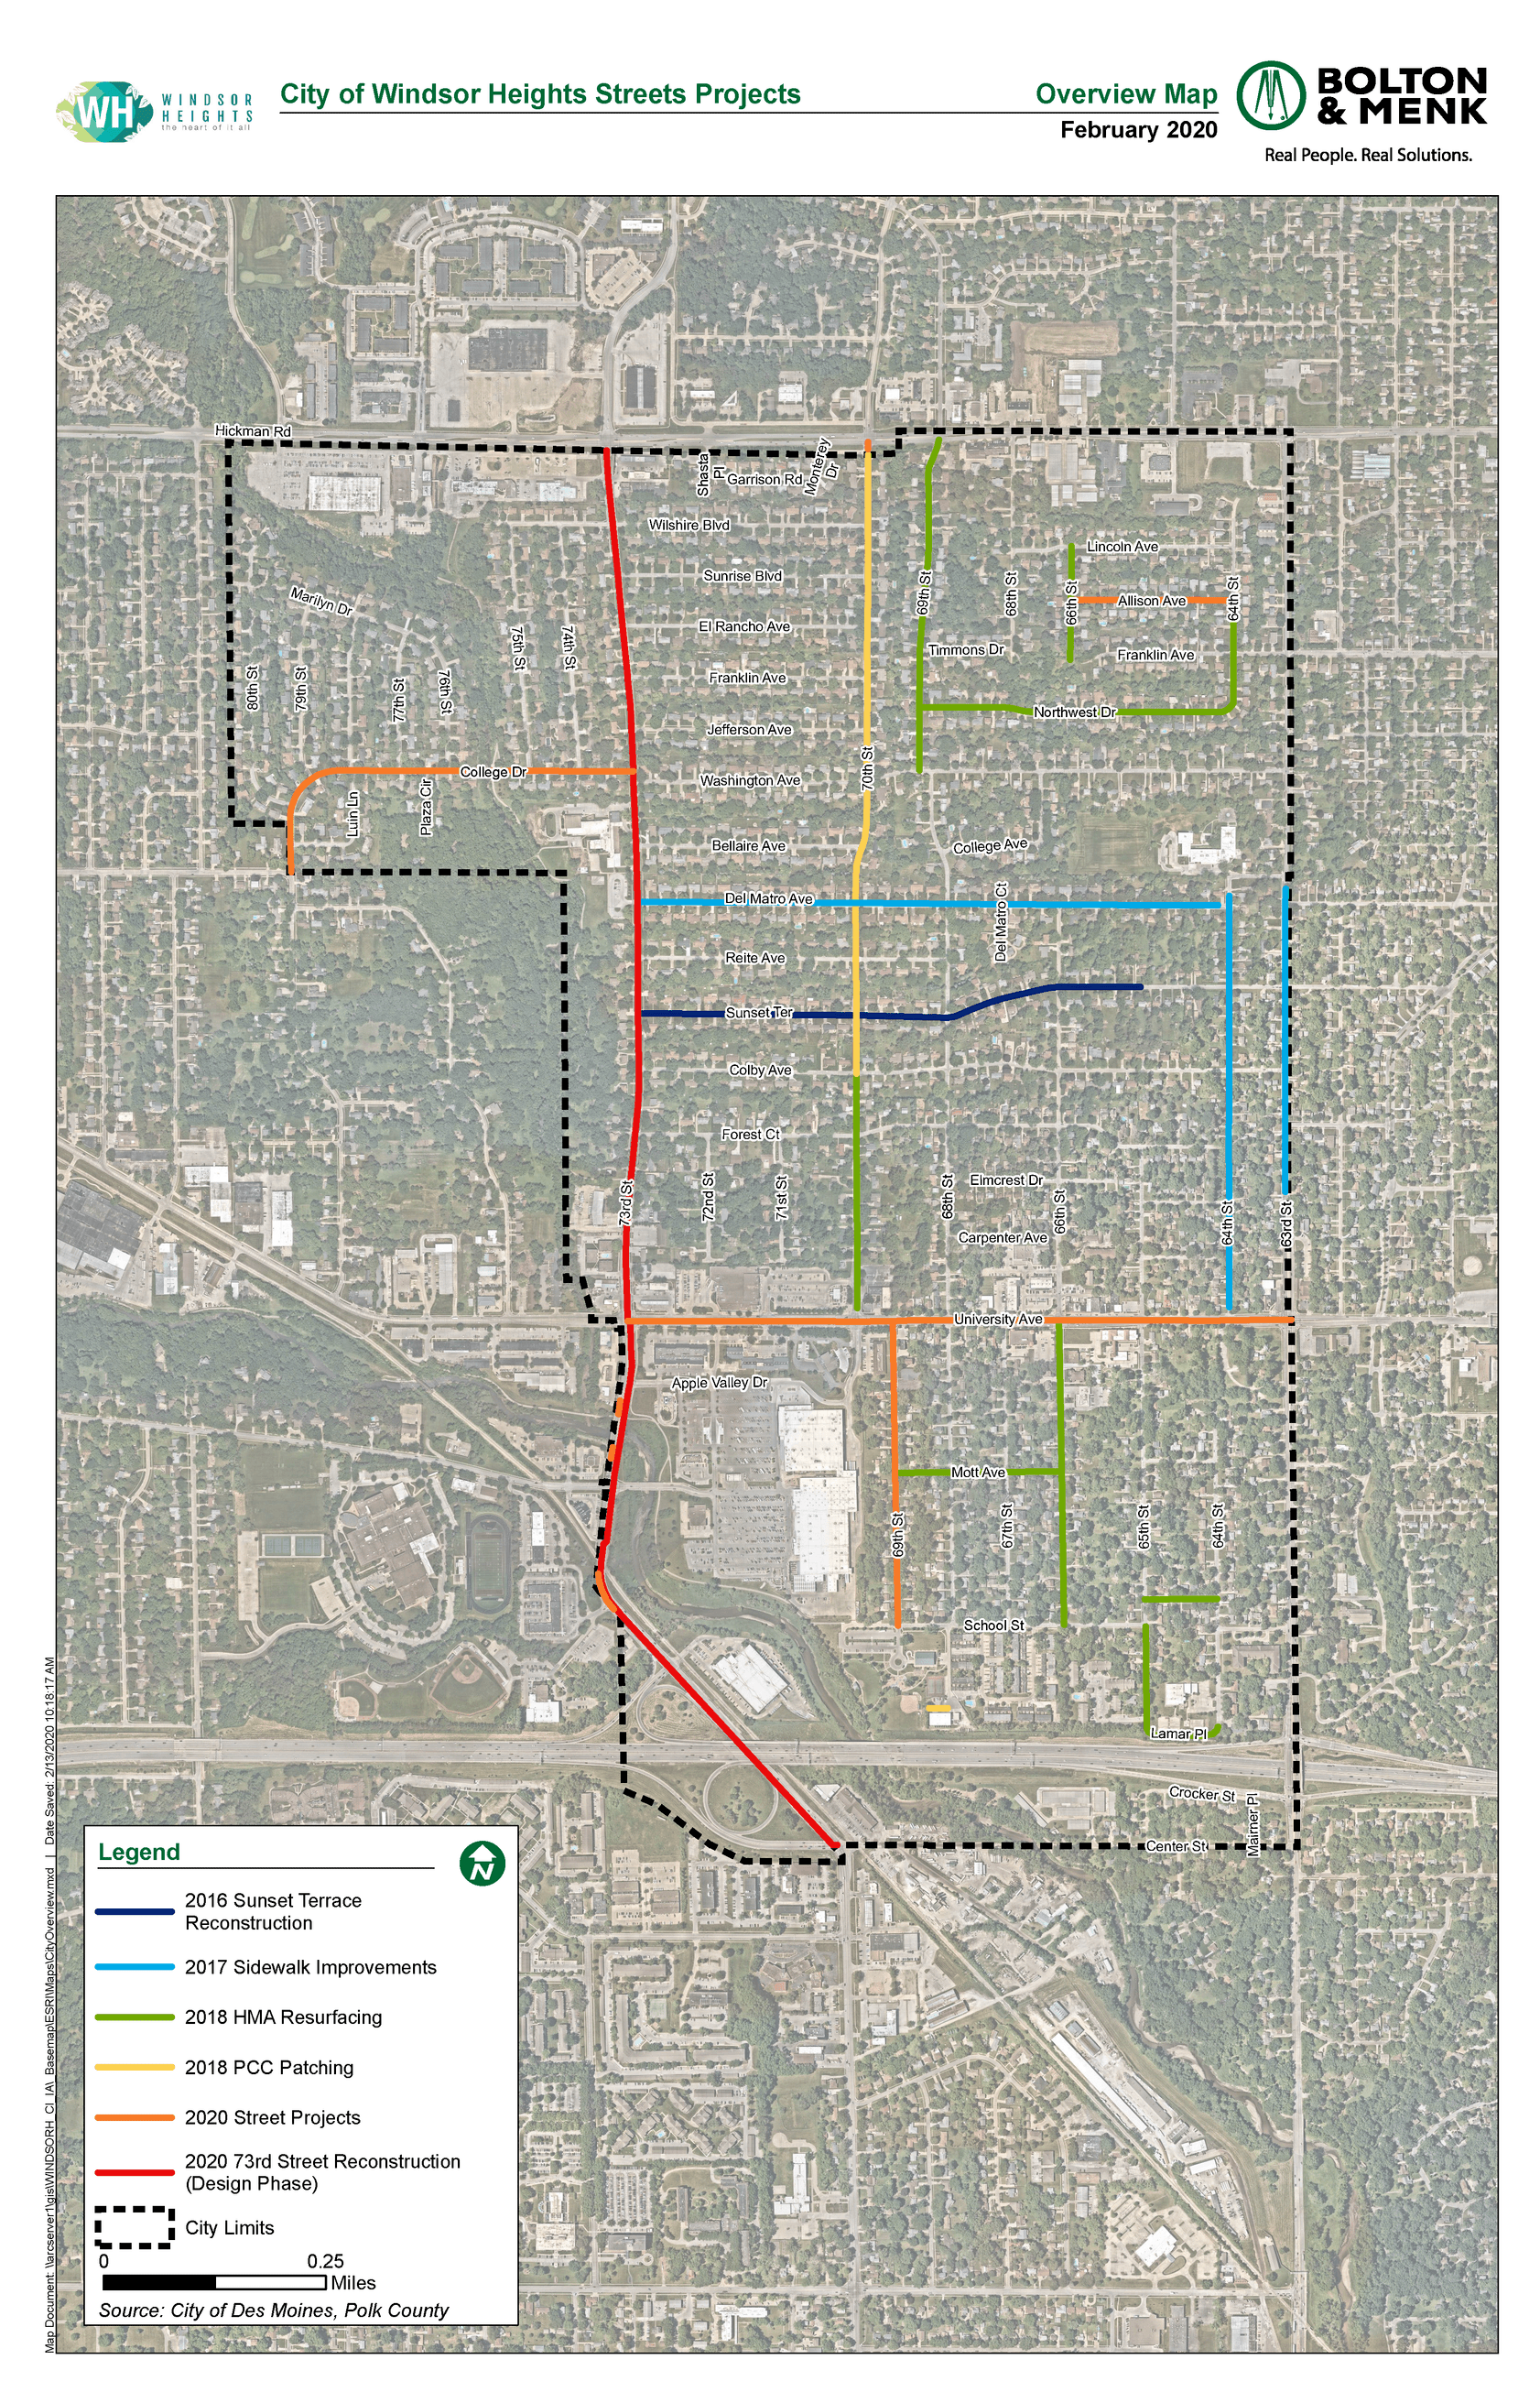 2020 City Overview Projects Map of Windsor Heights